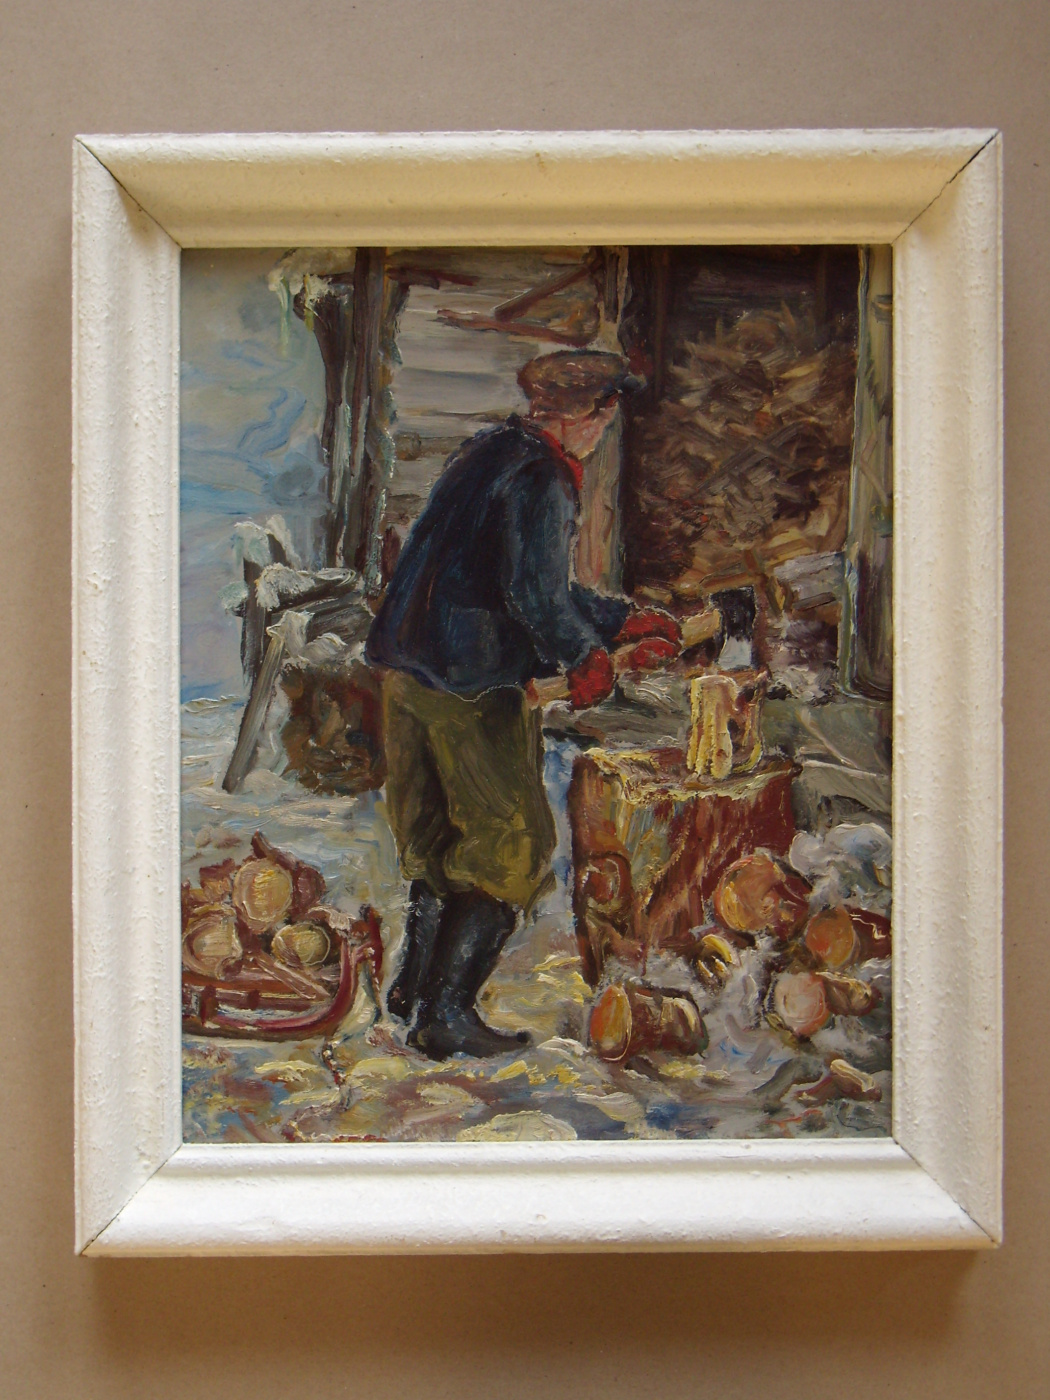 Unknown artist. Man chopping the wood stock.